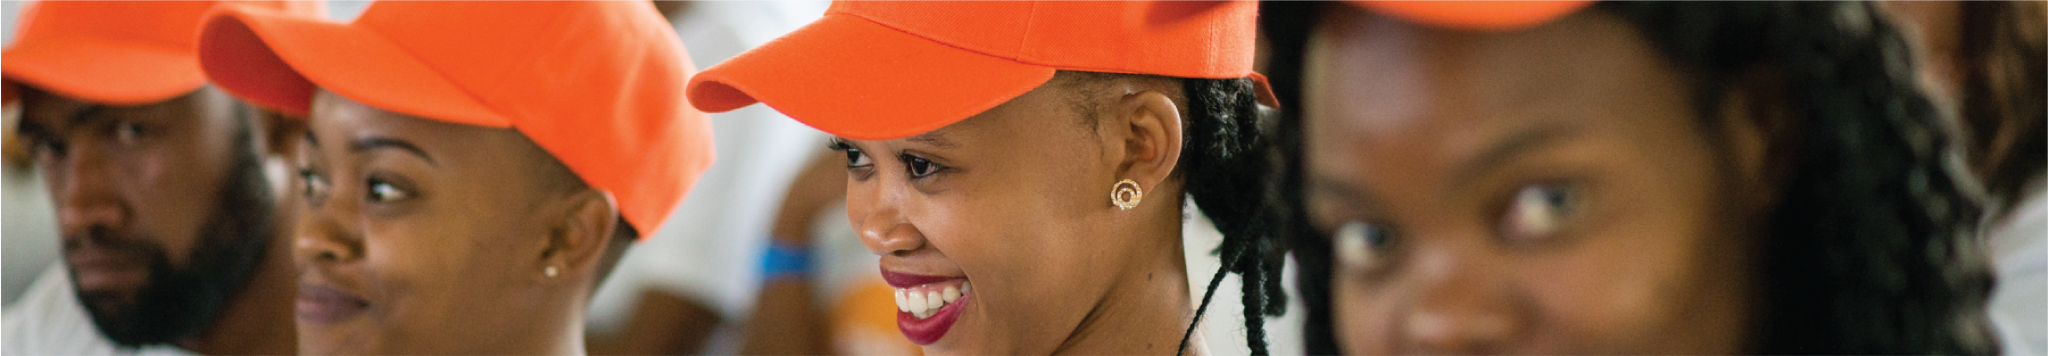 Youth wearing orange hat